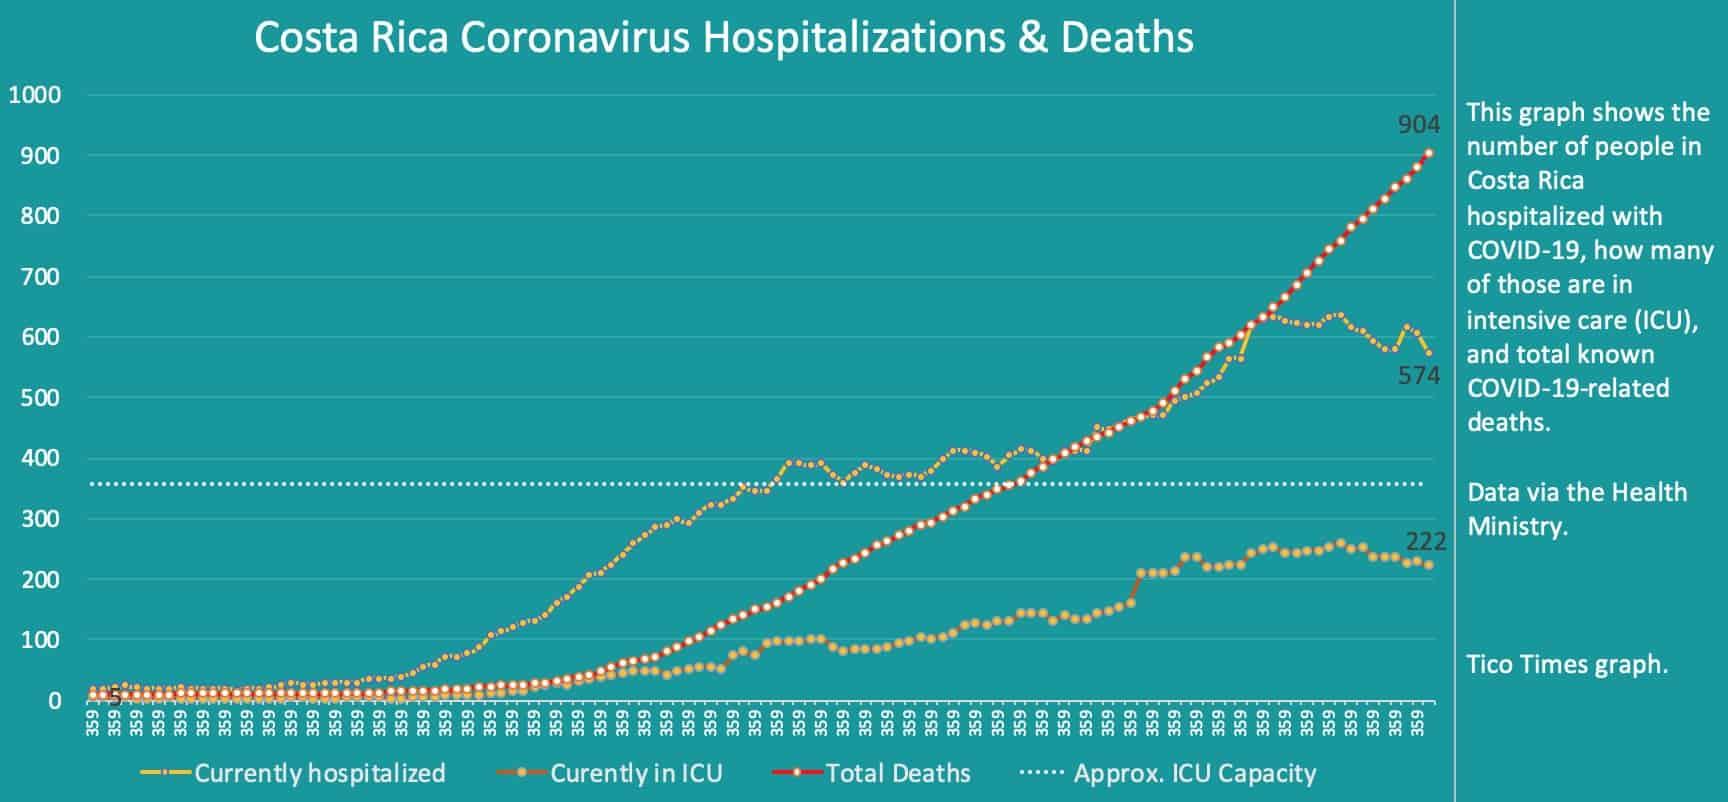 Costa Rica coronavirus hospitalizations and deaths on September 30, 2020